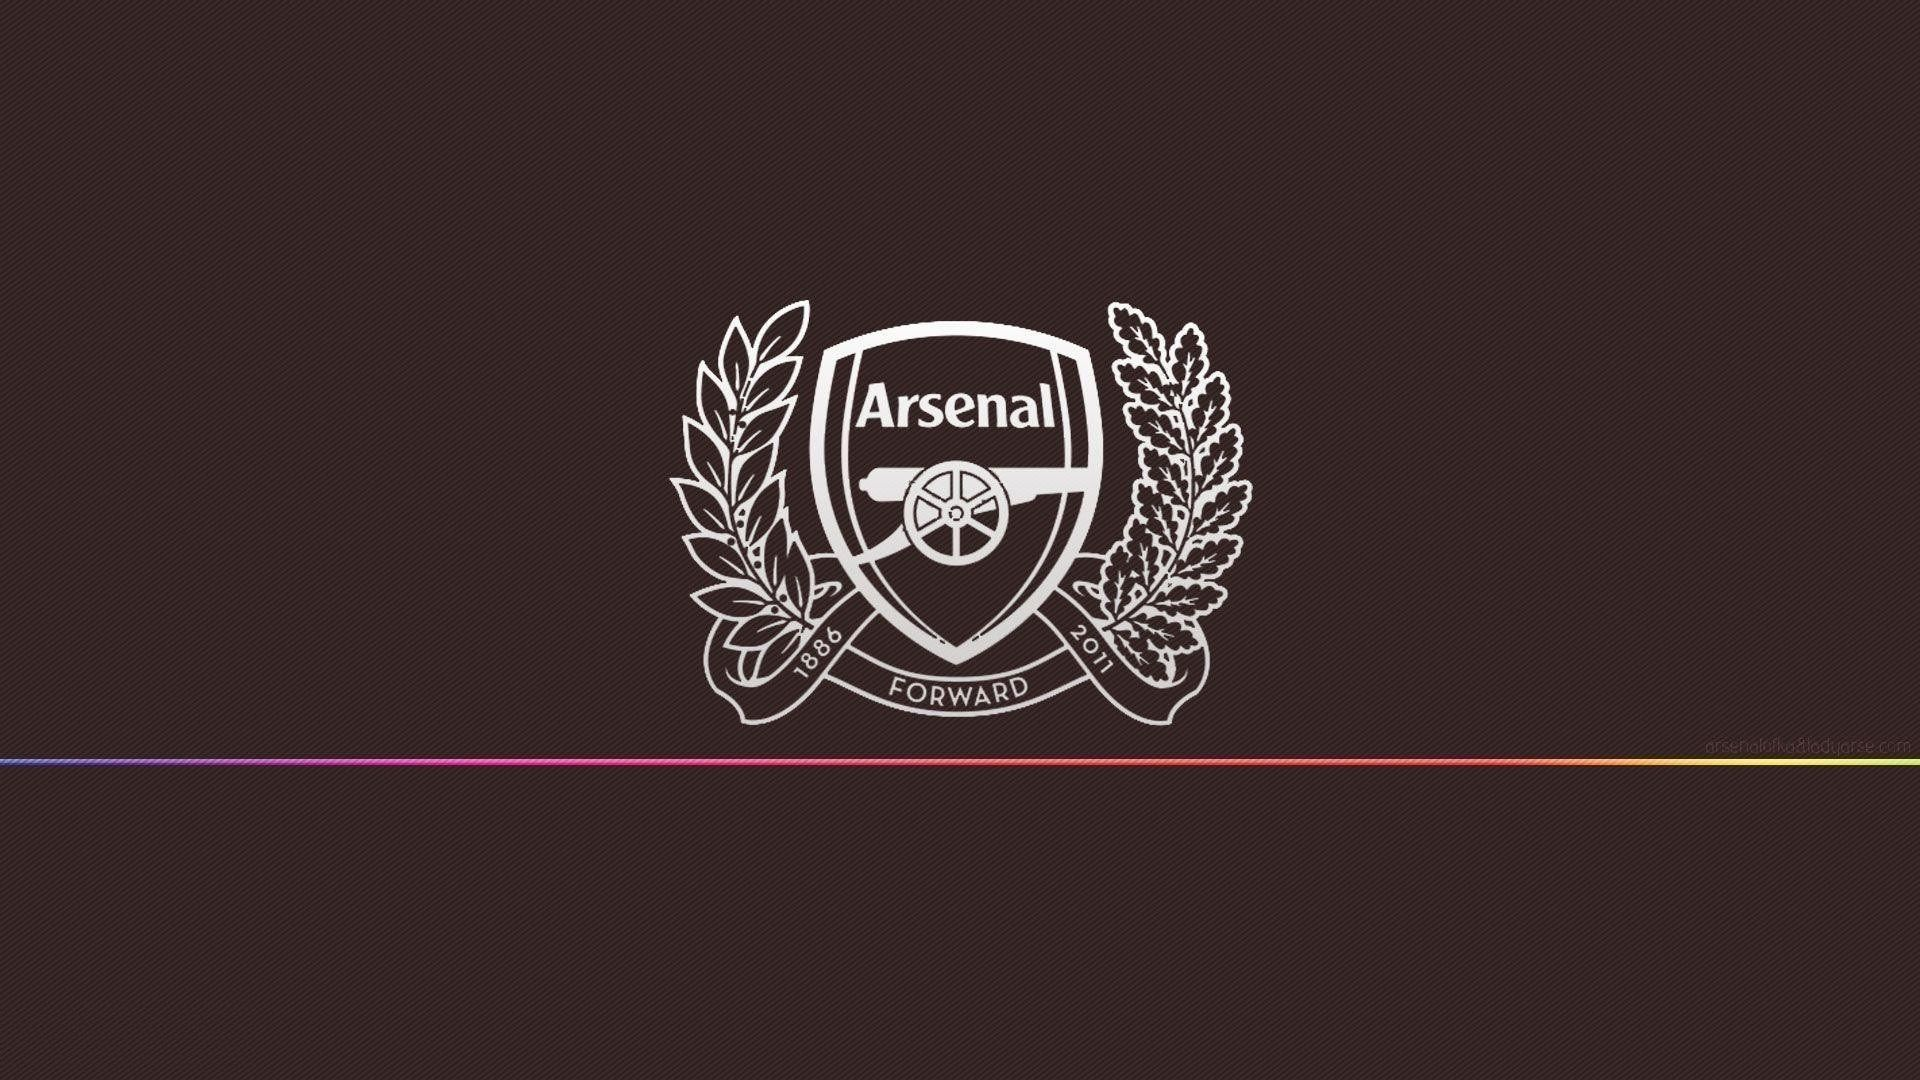 Wallpapers Arsenal